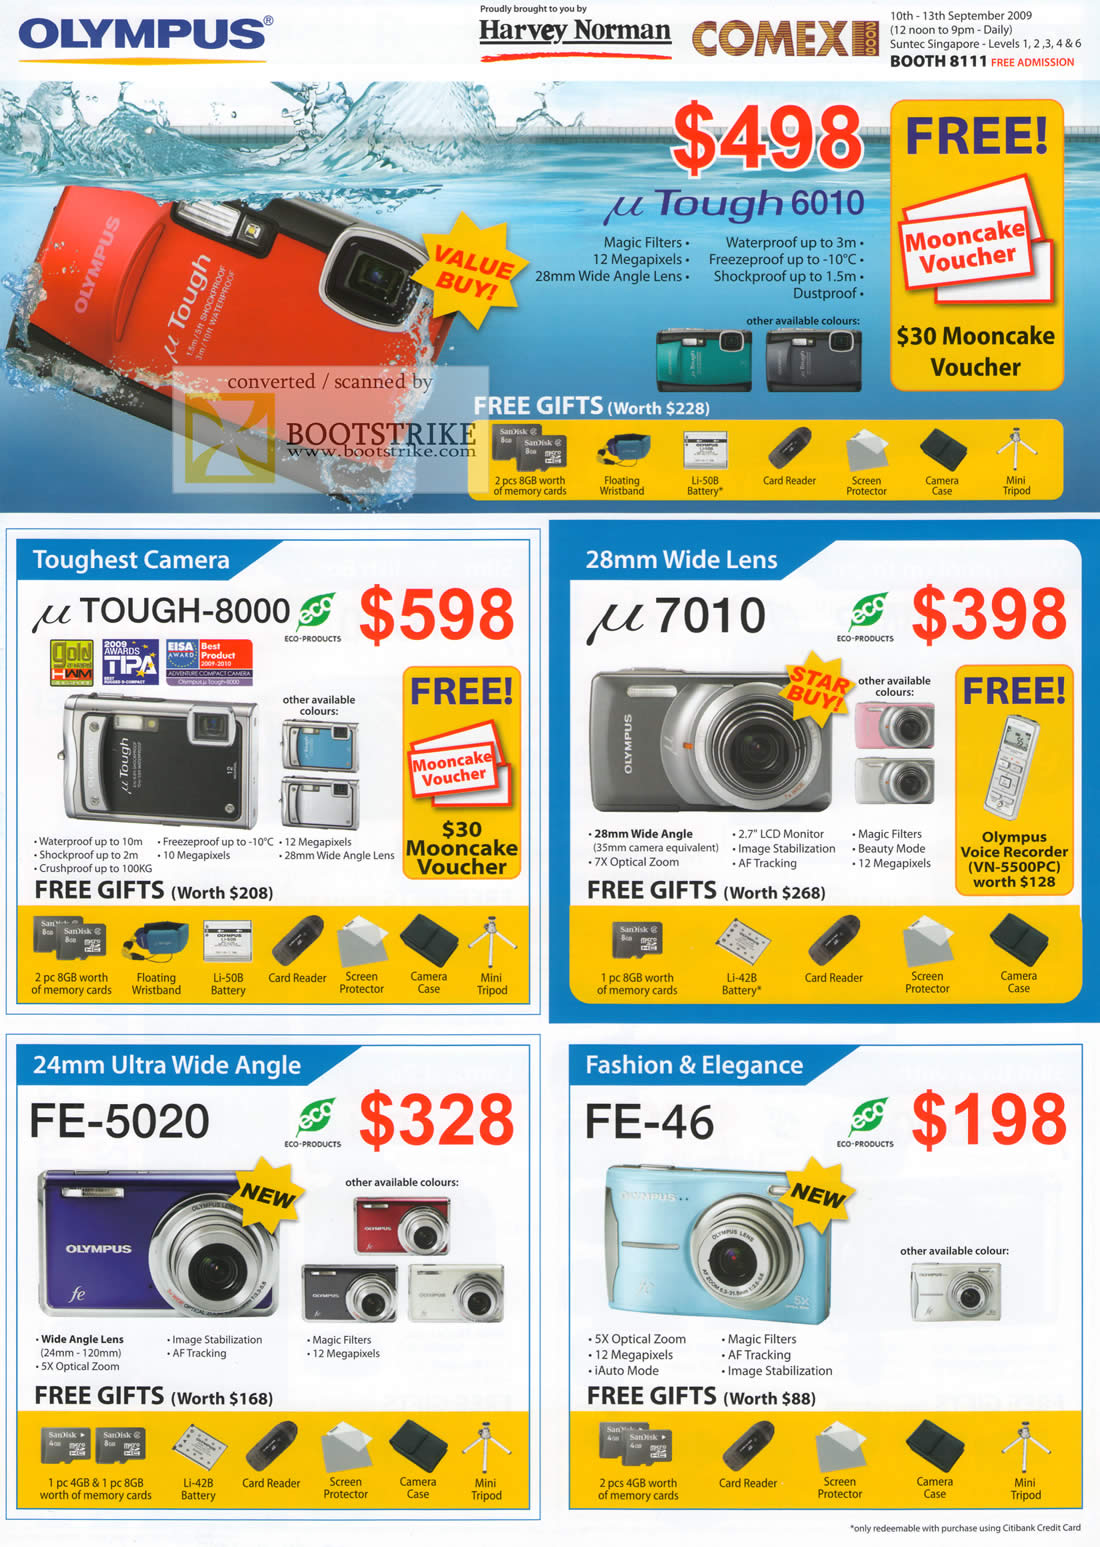 Comex 2009 price list image brochure of Olympus Digital Cameras UTough 6010 8000 7010 FE-5020 FE-46